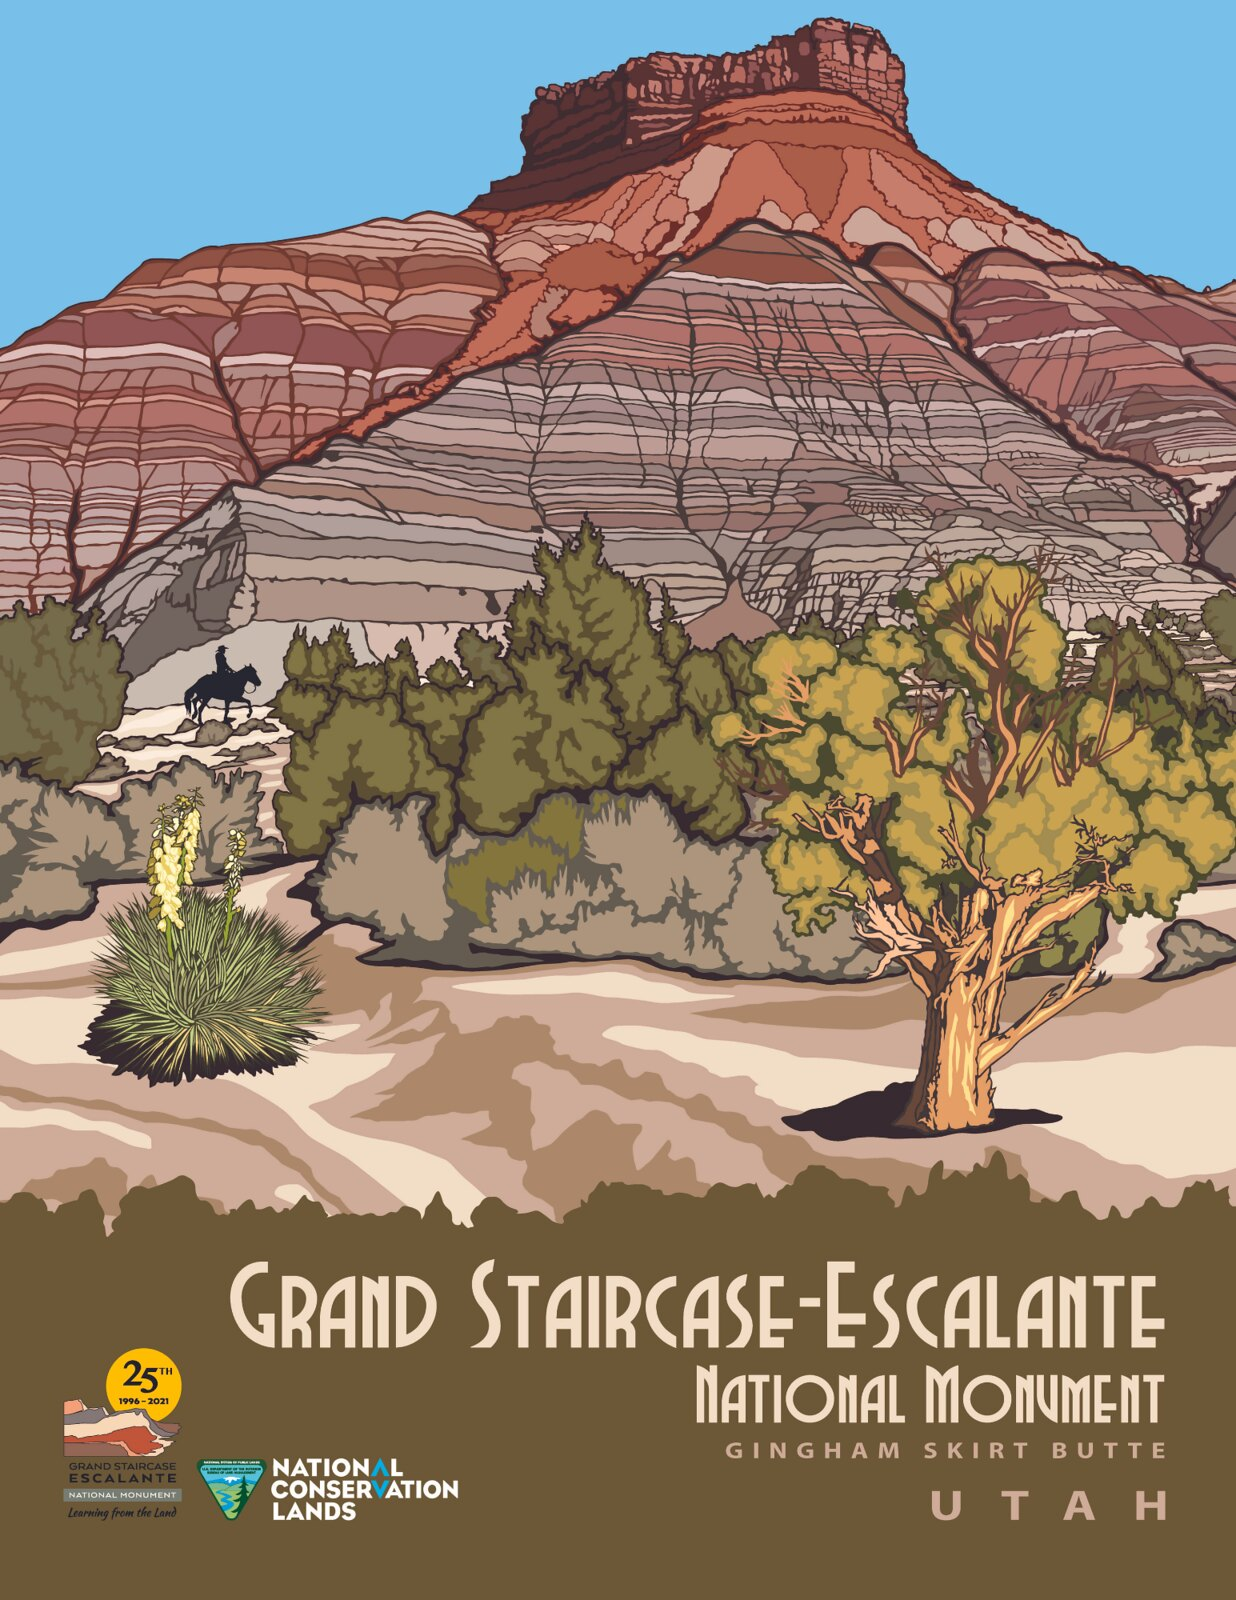 Grand Staircase-Escalante National Monument: 25th Anniversary Posters